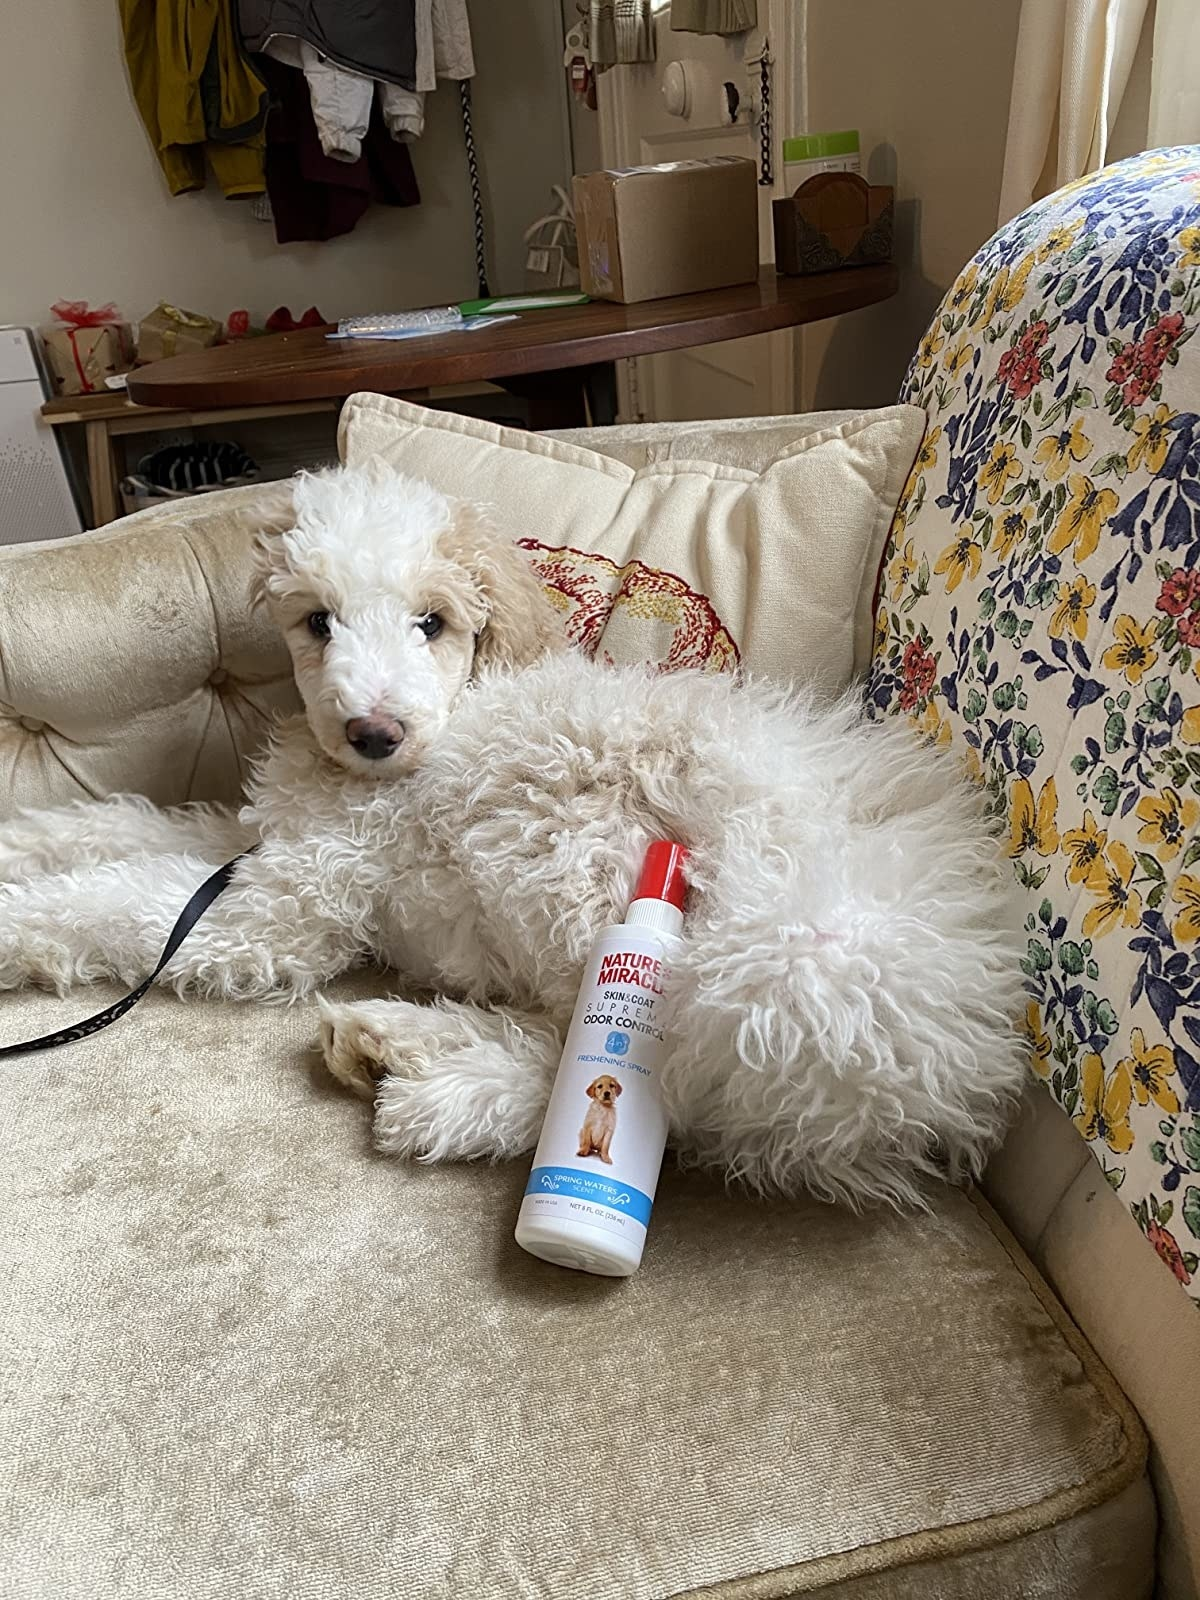 A fluffy puppy with the spray bottle